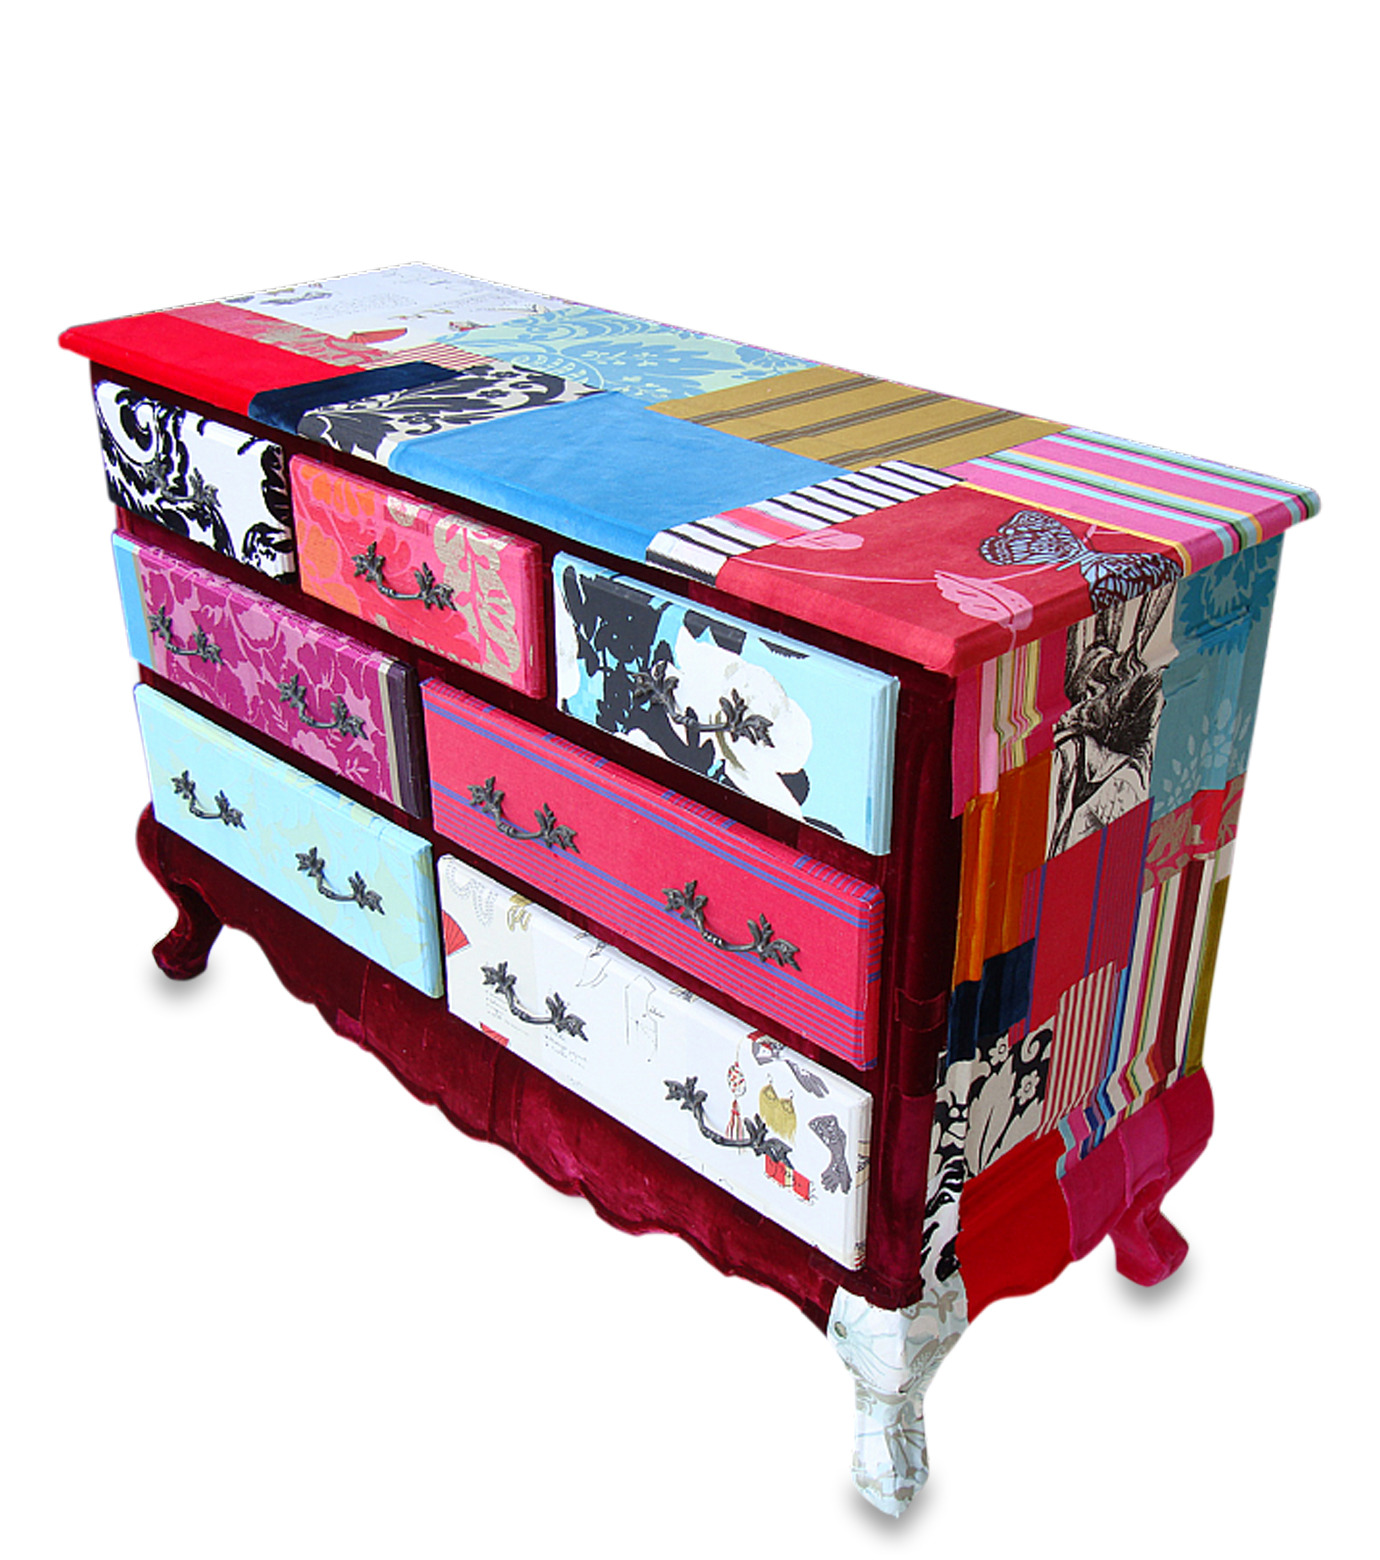 Squintlimited(スクイントリミテッド)の7 Drawer chest-NONE-2-0 拡大詳細画像3